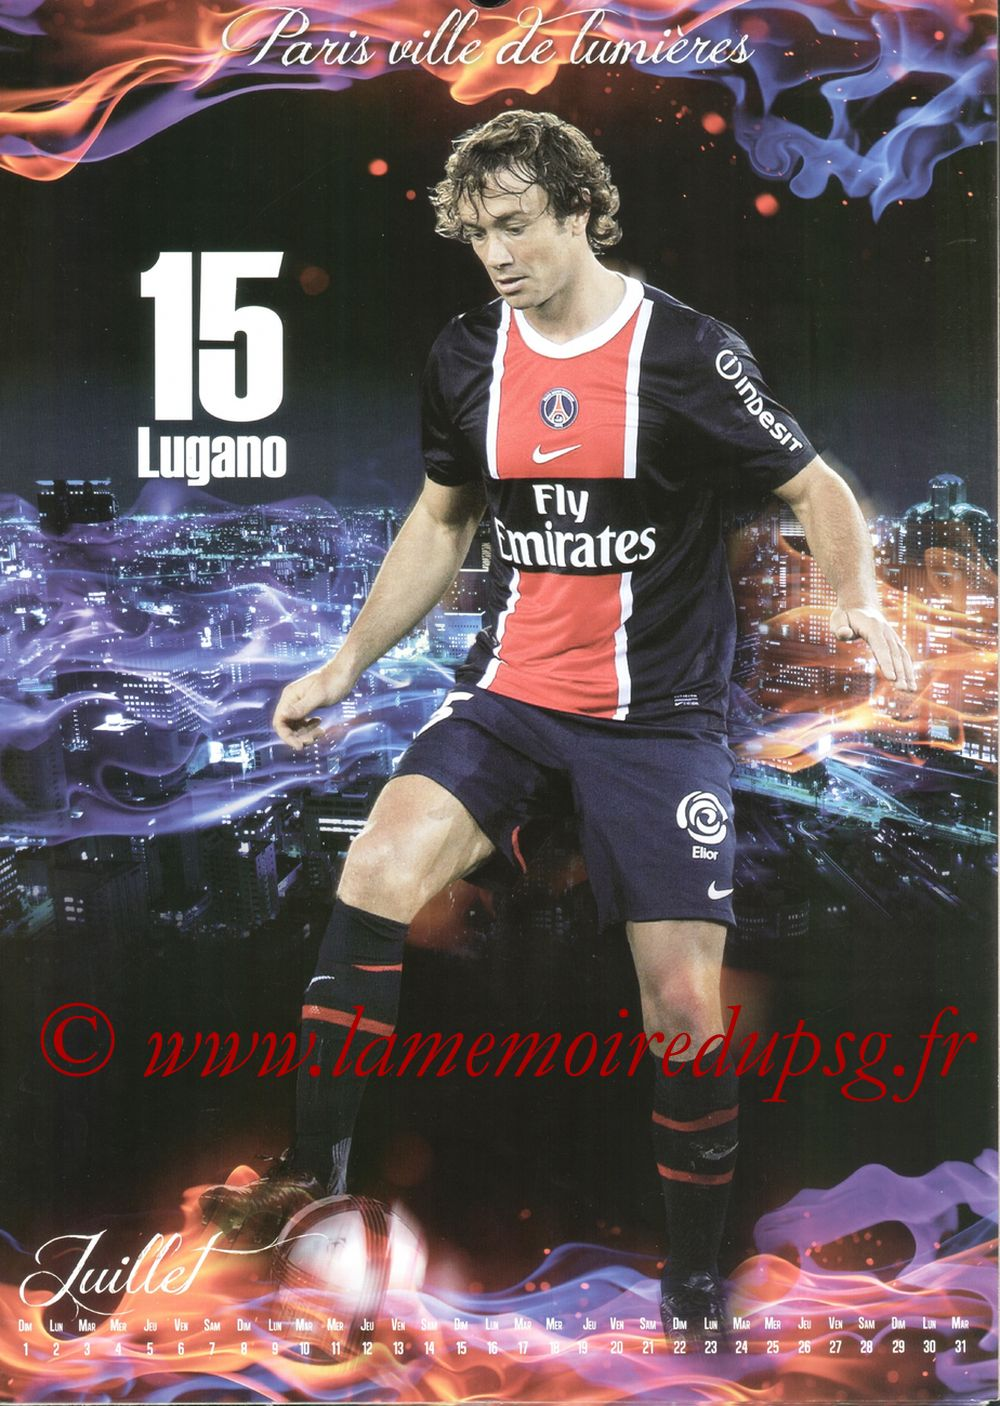 Calendrier PSG 2012bis - Page 07 - Diego LUGANO